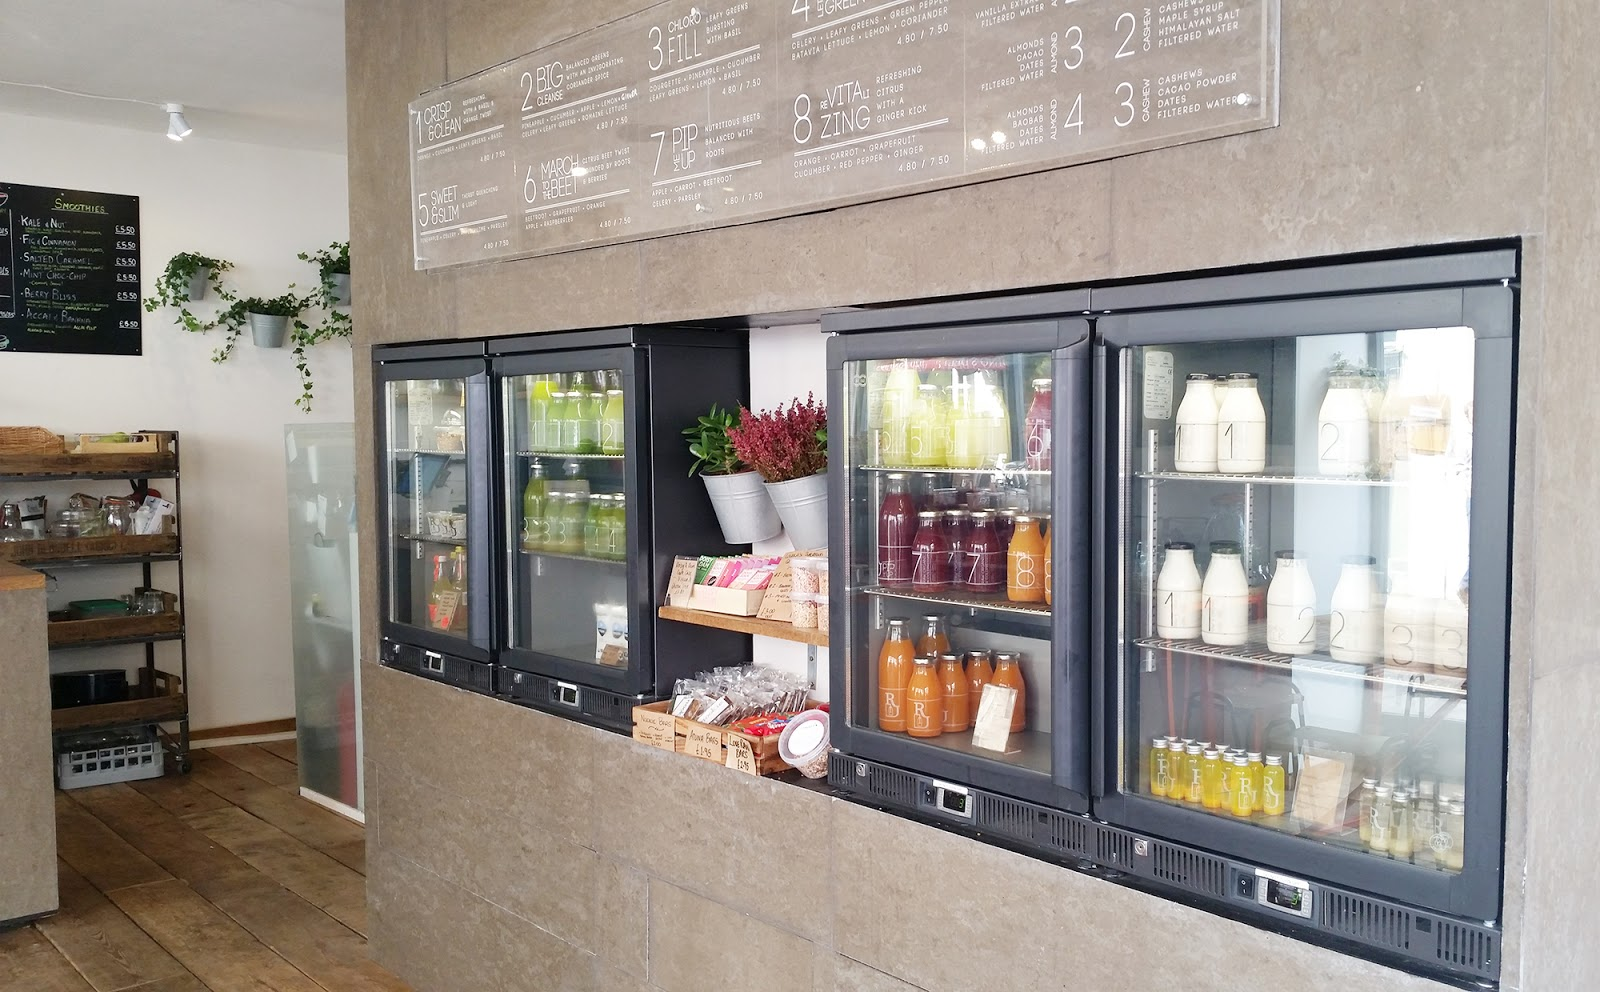 Roots Juicery juice bar Fitzrovia London review